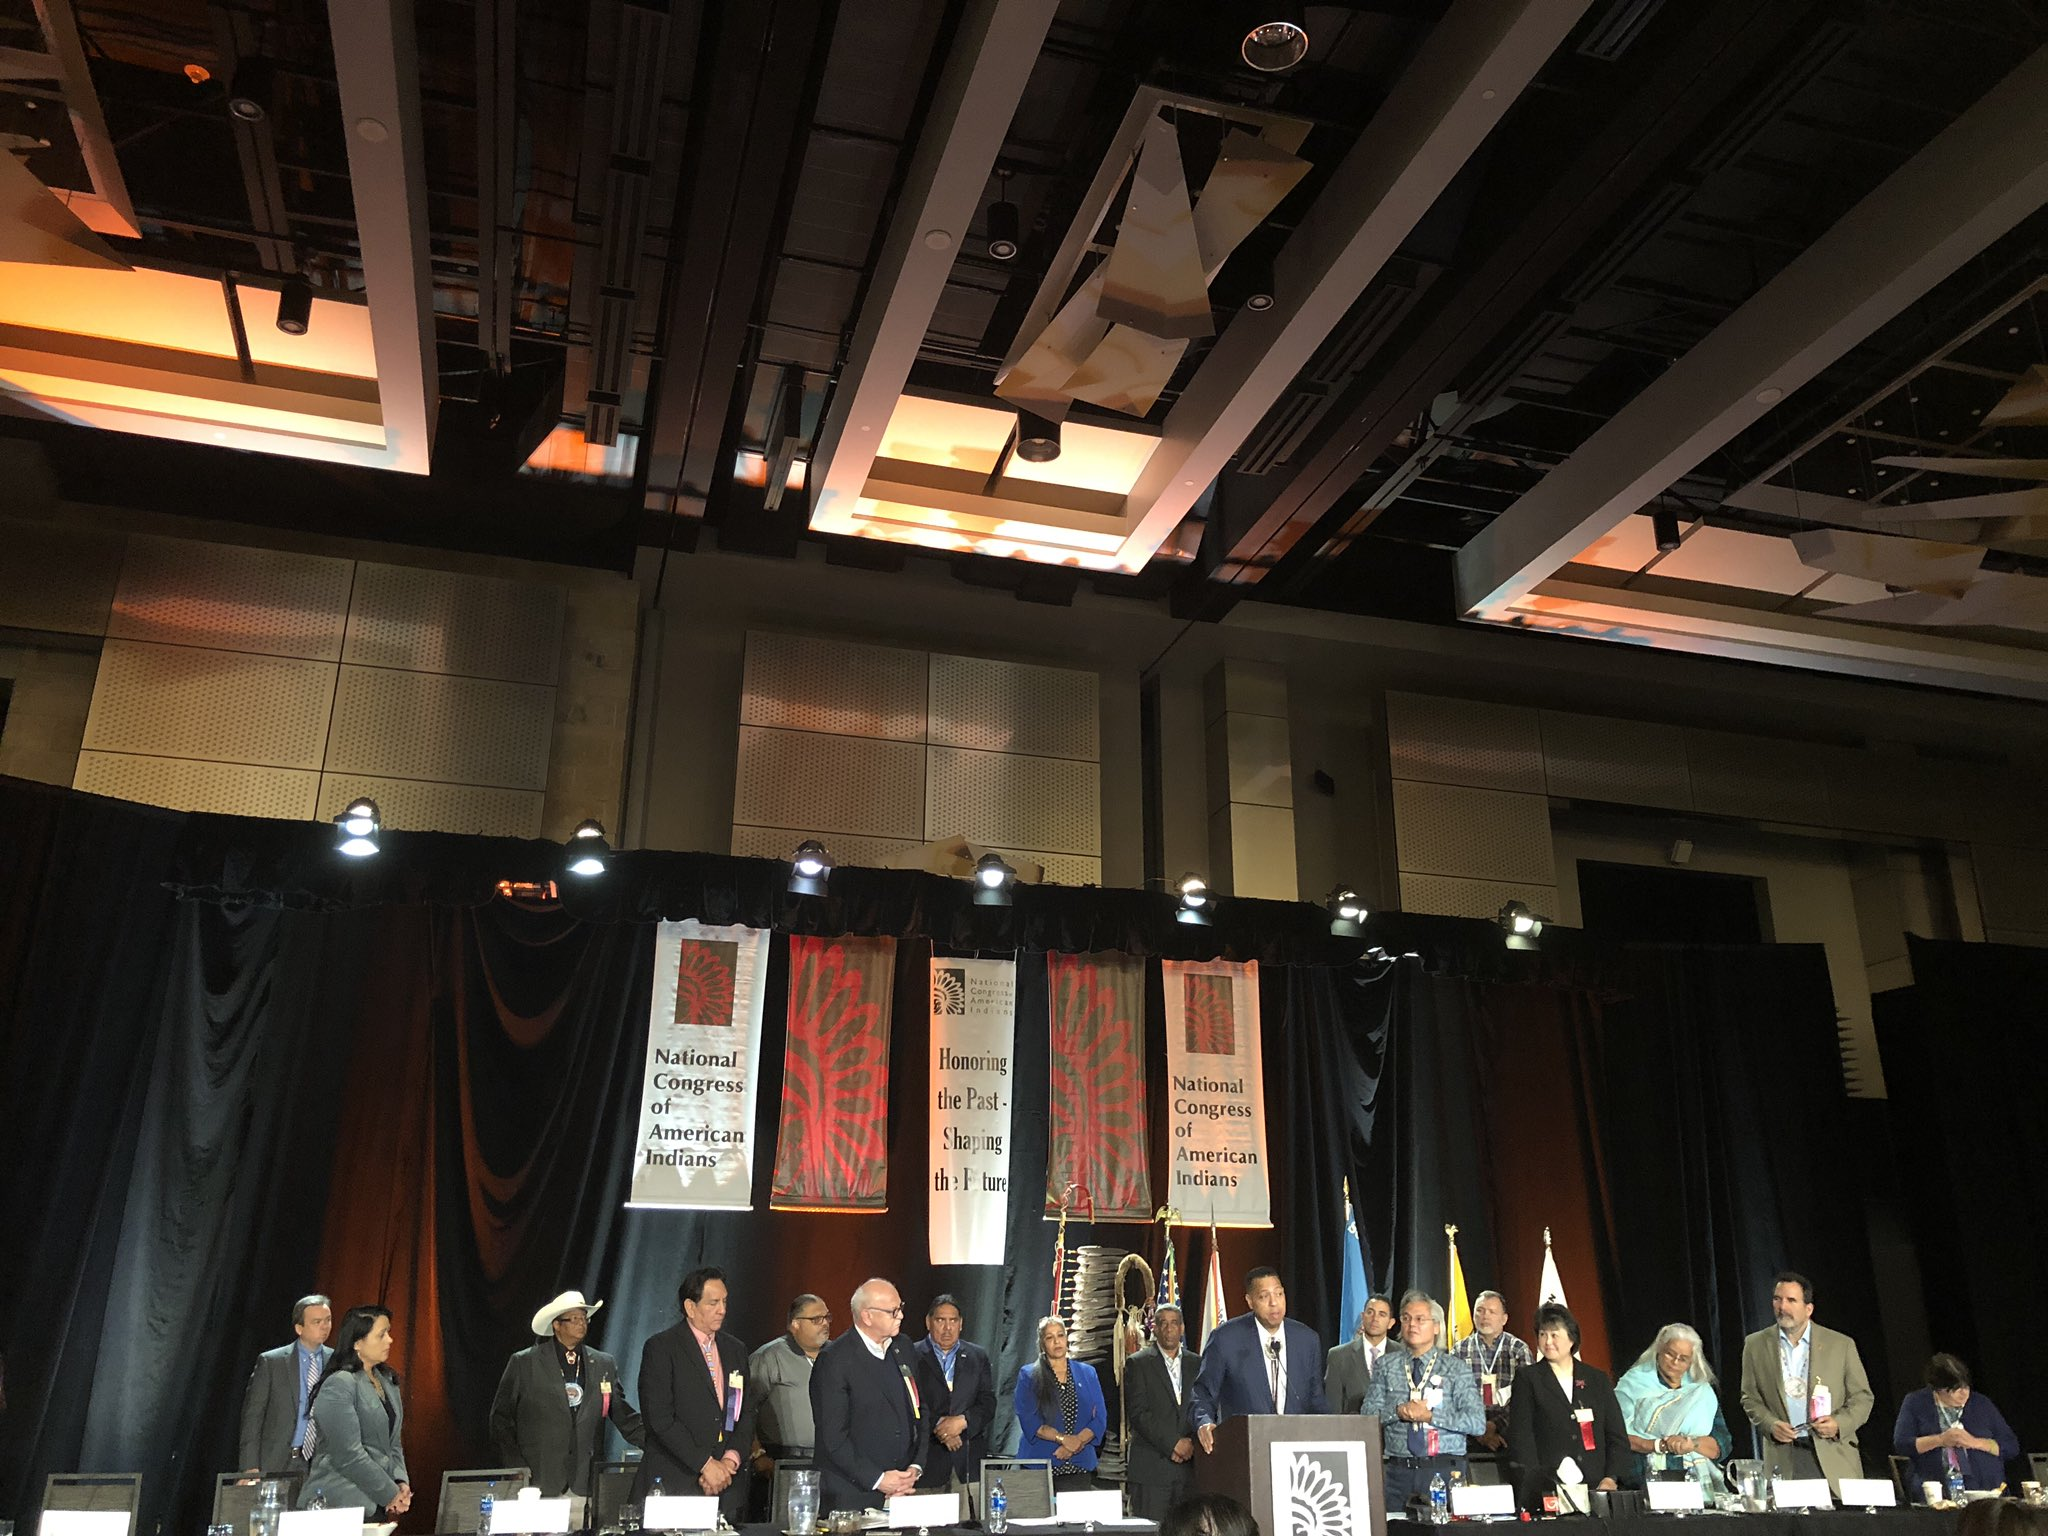 Recap: Day 2 of National Congress of American Indians #NCAI75